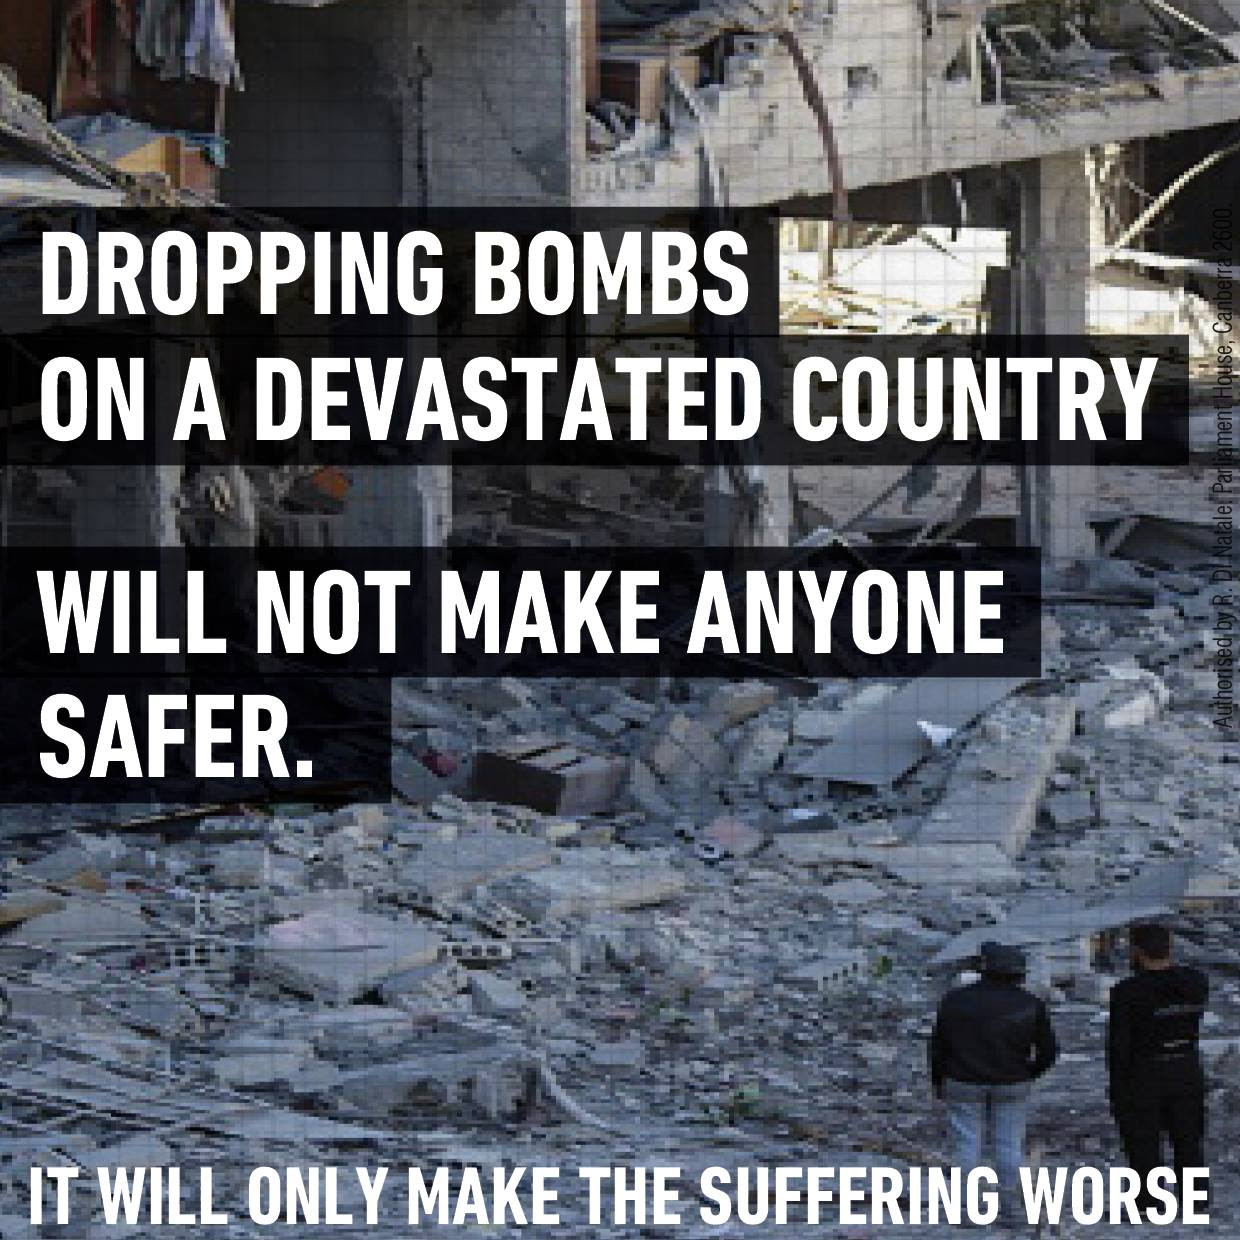 Bombing Syria will only make things worse